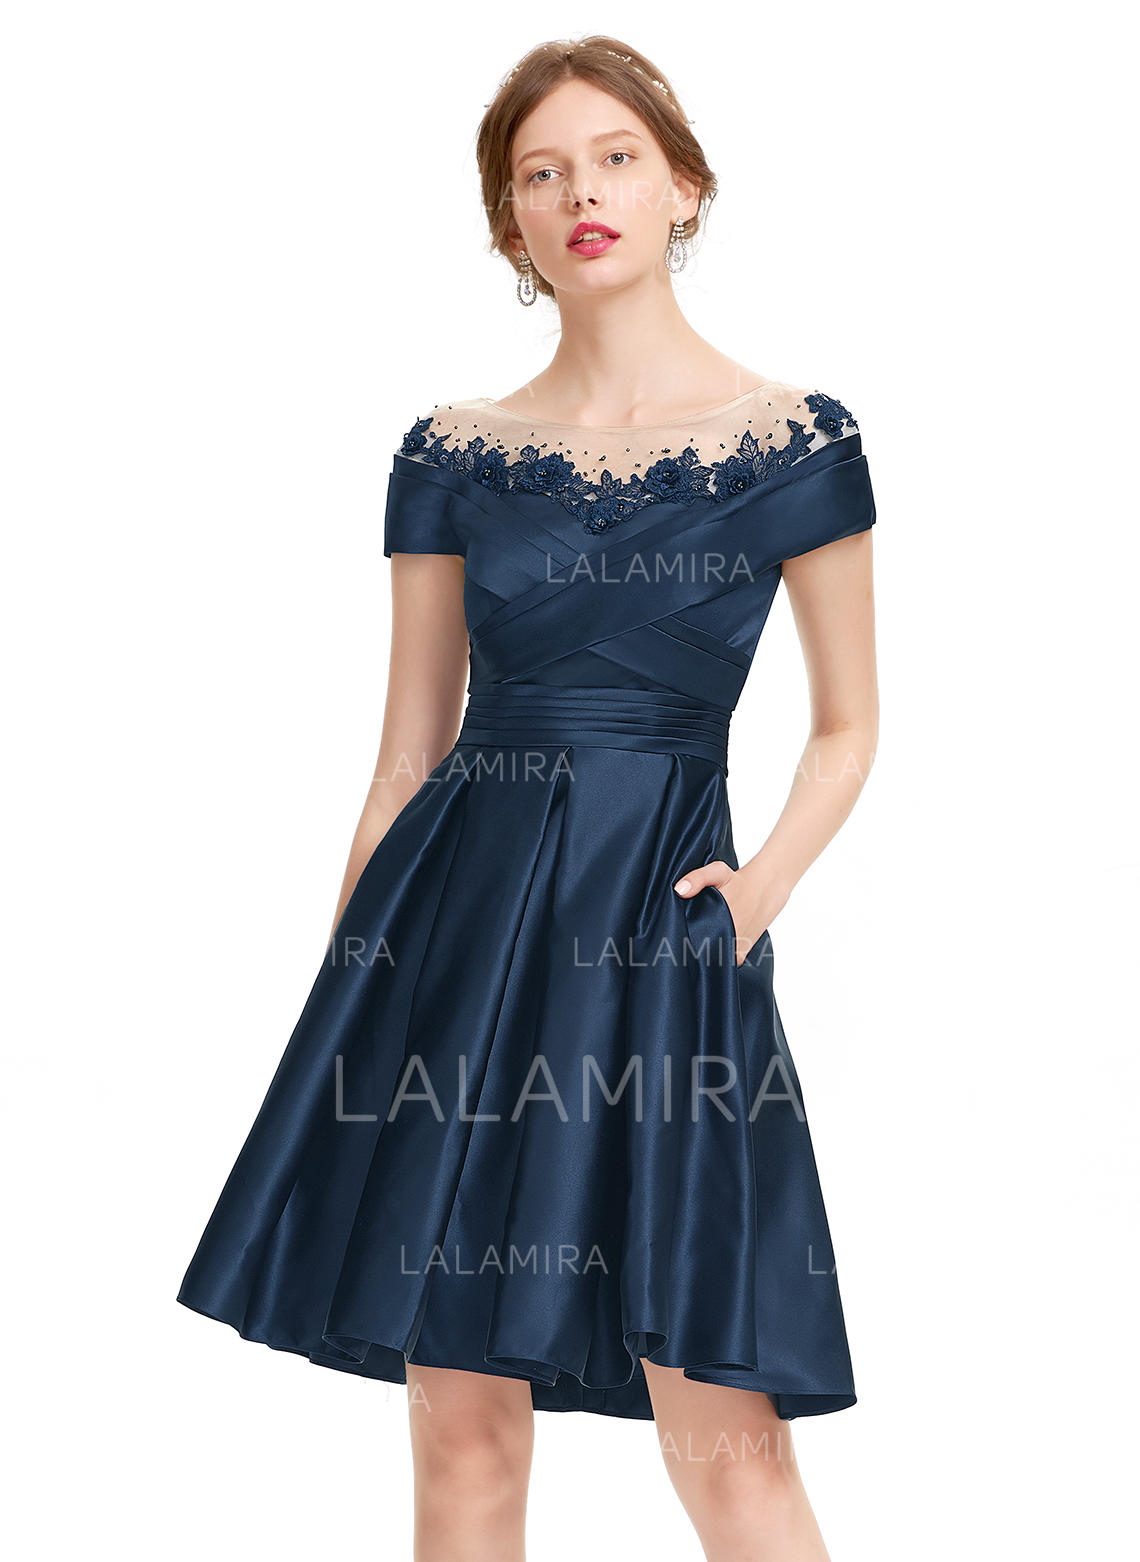 60b11fd535376 A-Line/Princess Scoop Neck Knee-Length Satin Cocktail Dress With Ruffle  Beading. Loading zoom